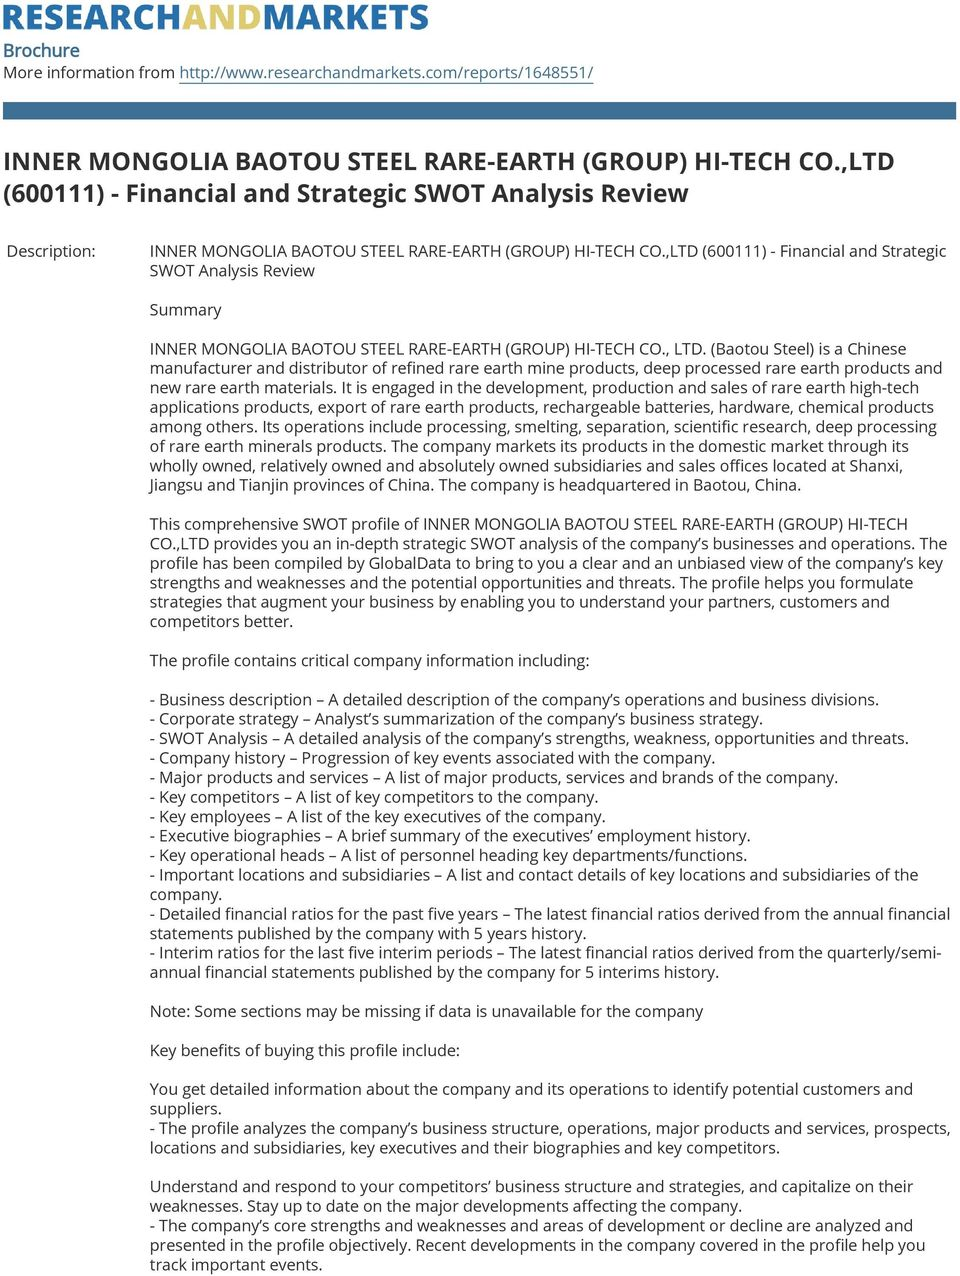 ,LTD (600111) - Financial and Strategic SWOT Analysis Review Summary INNER MONGOLIA BAOTOU STEEL RARE-EARTH (GROUP) HI-TECH CO., LTD.